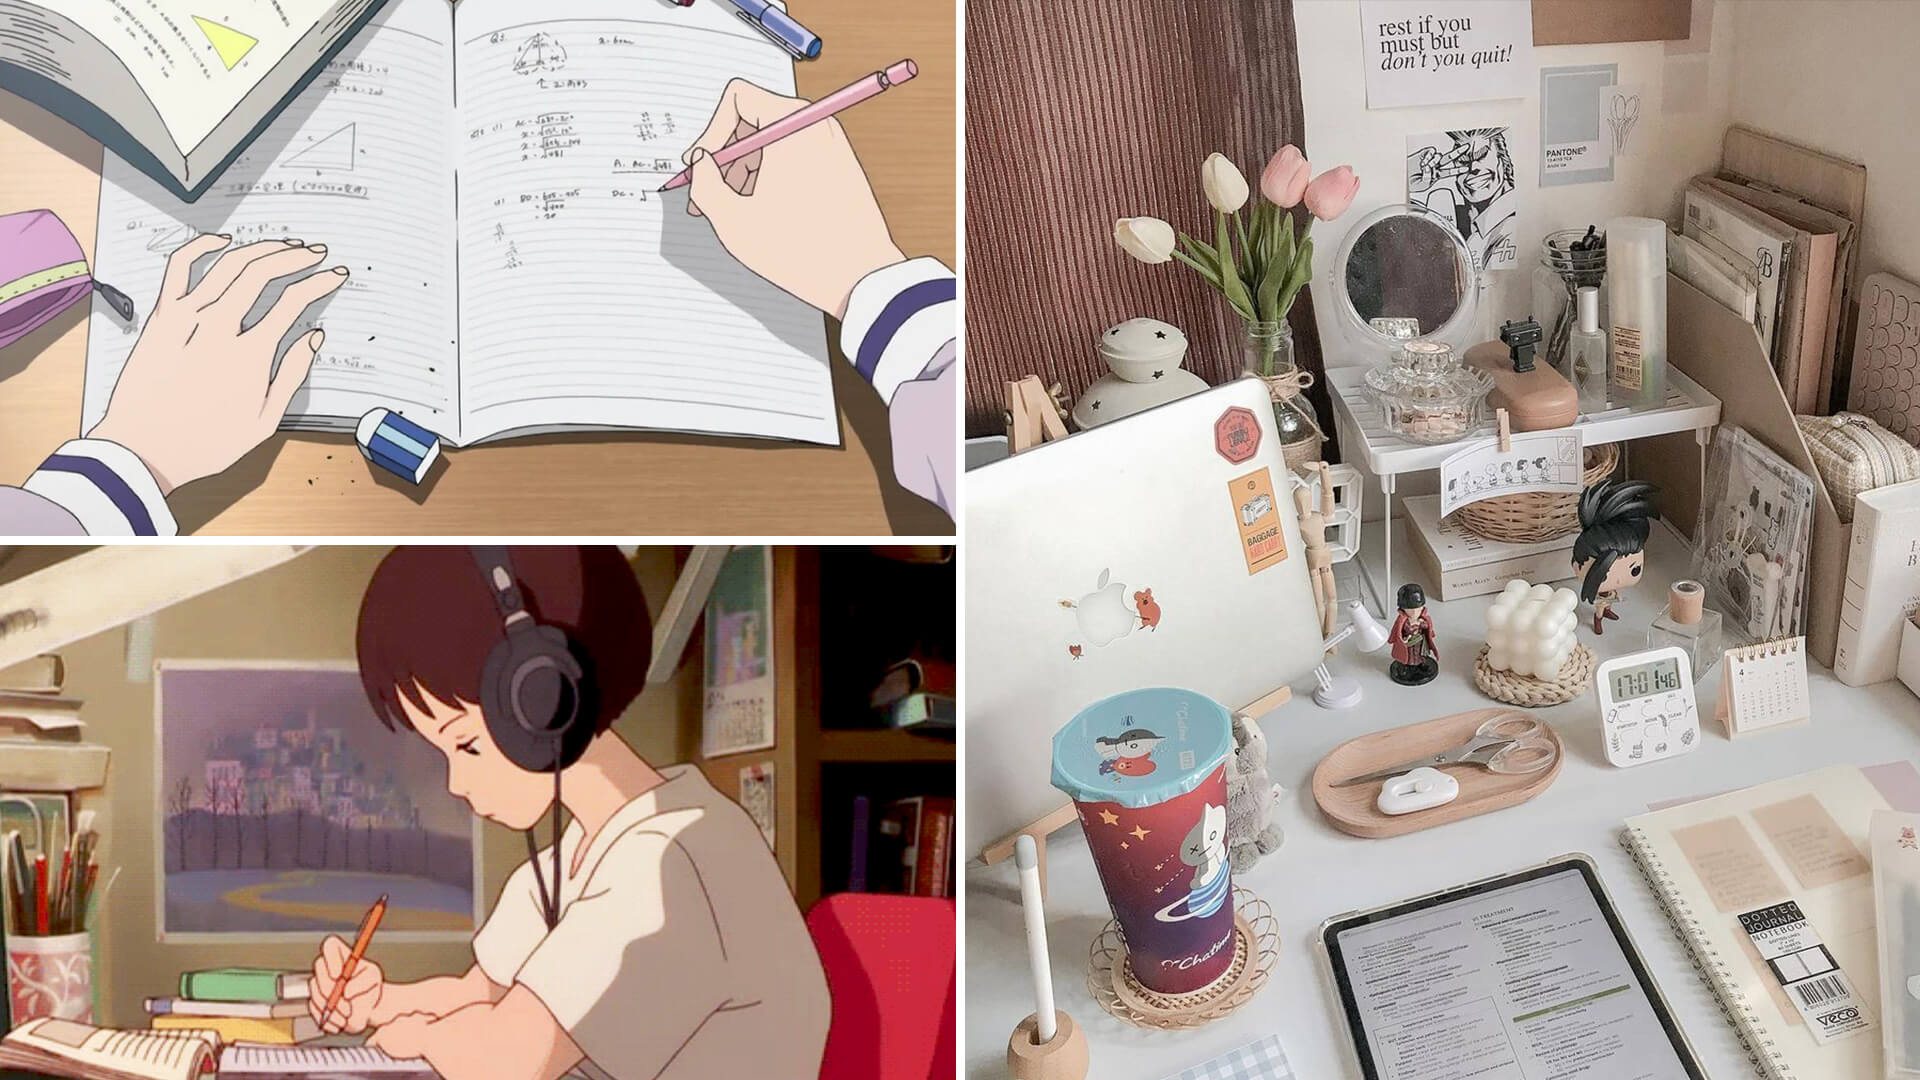 Study Aesthetic Inspo for Your Motivation